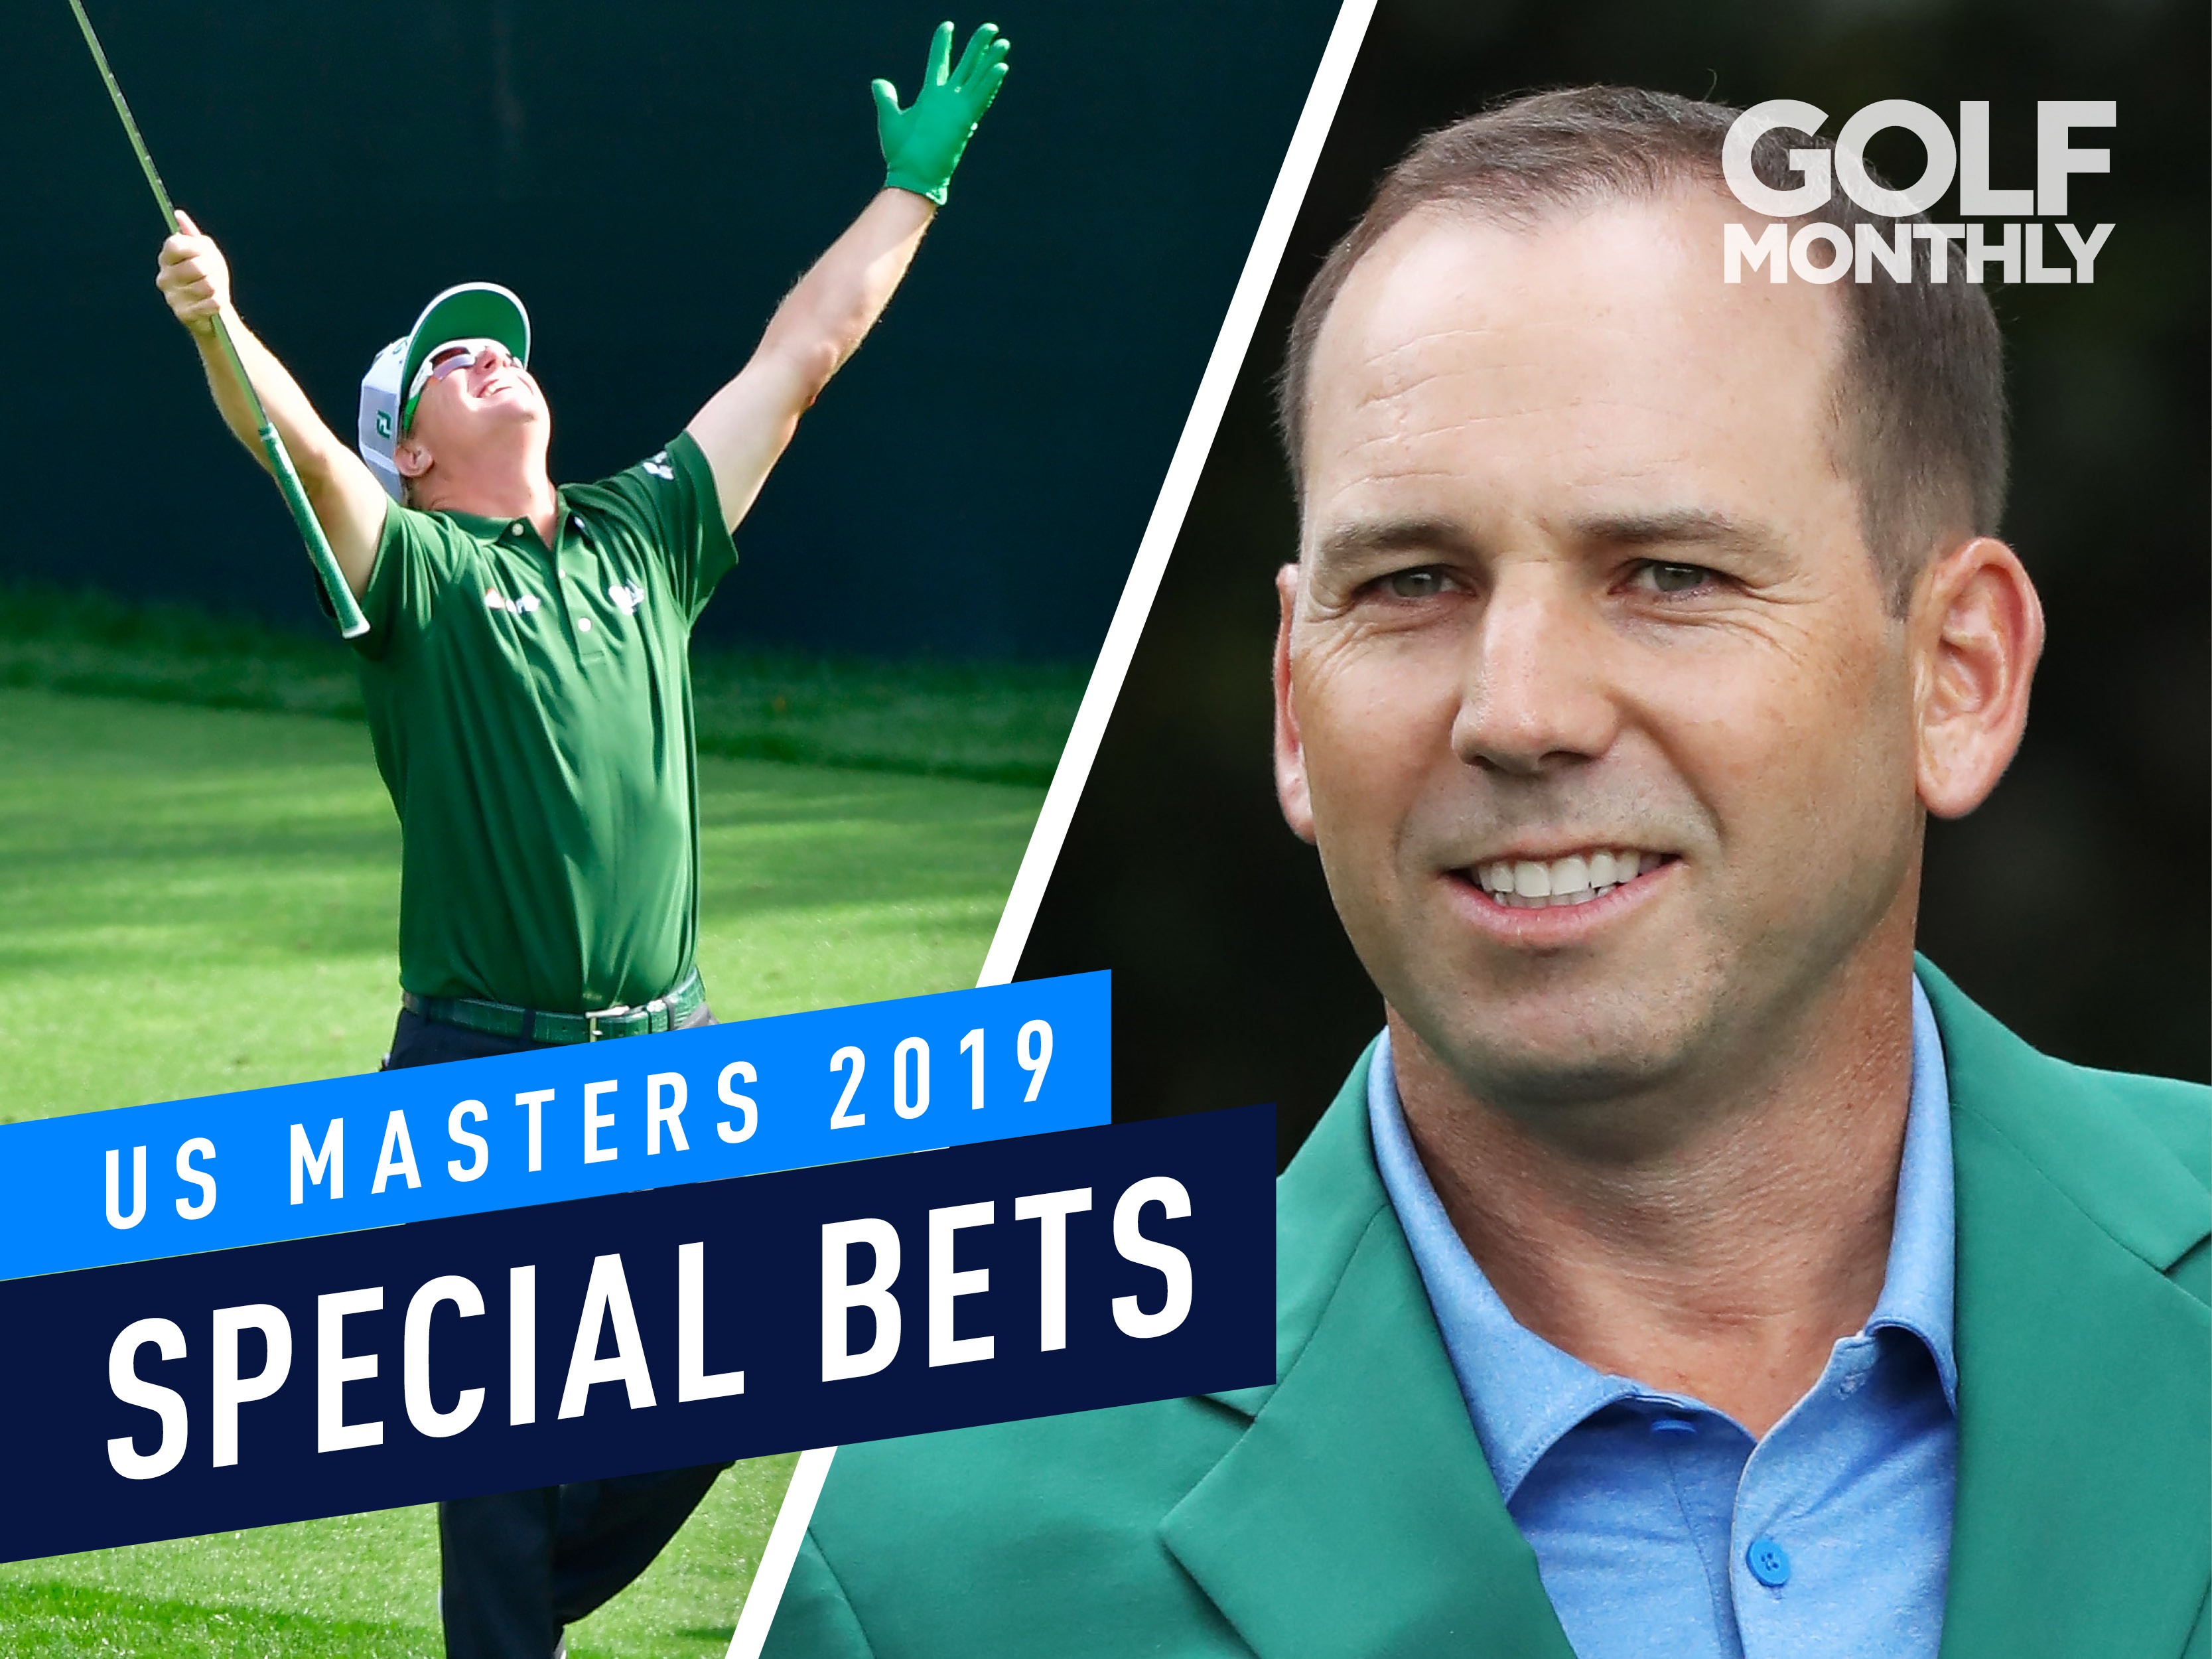 Us masters betting offers cy mathematical sports betting